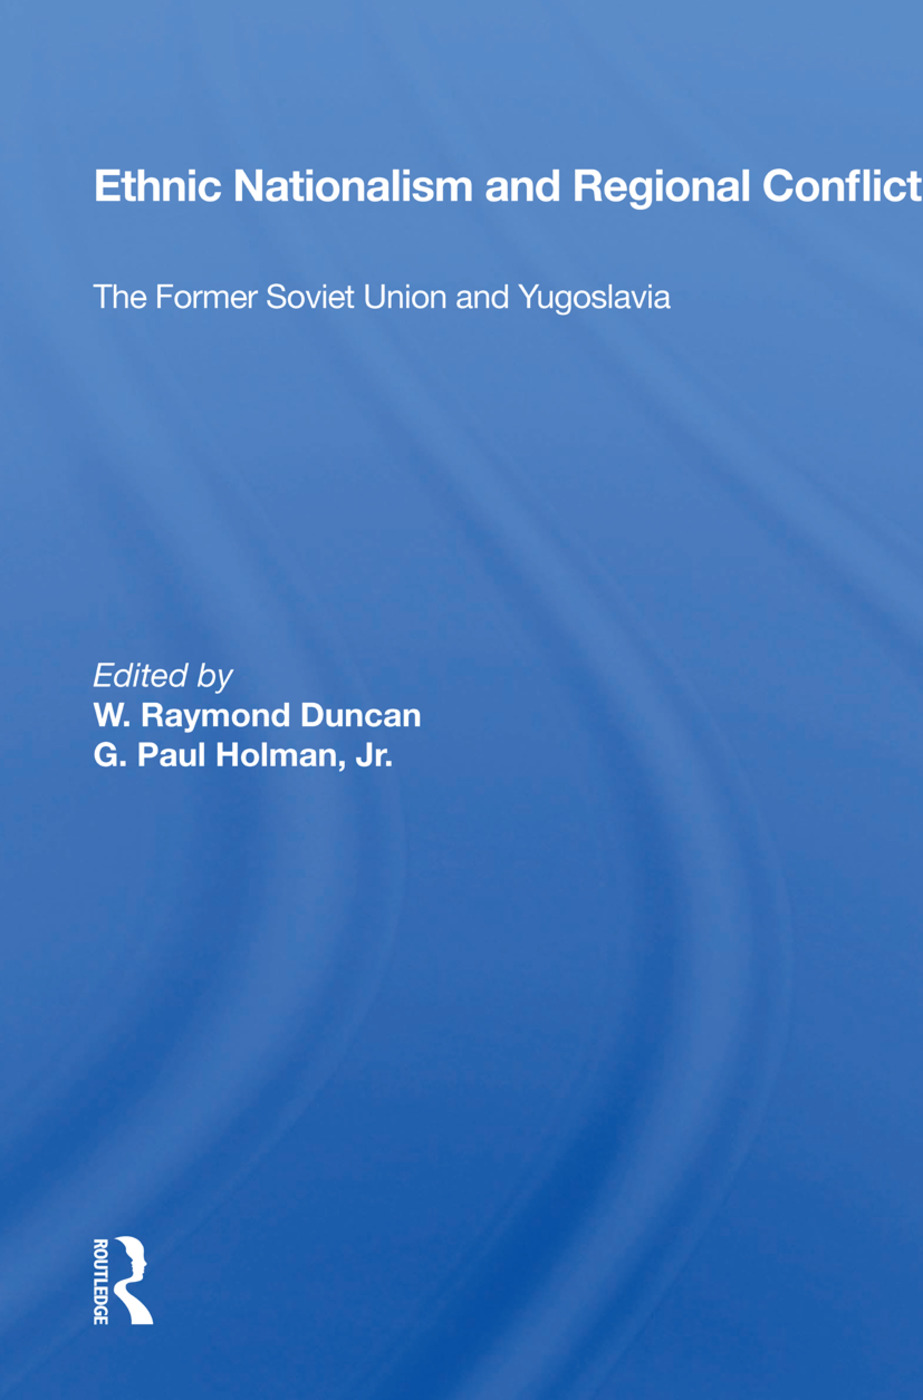 Ethnic Nationalism and Regional Conflict: The Former Soviet Union and Yugoslavia book cover